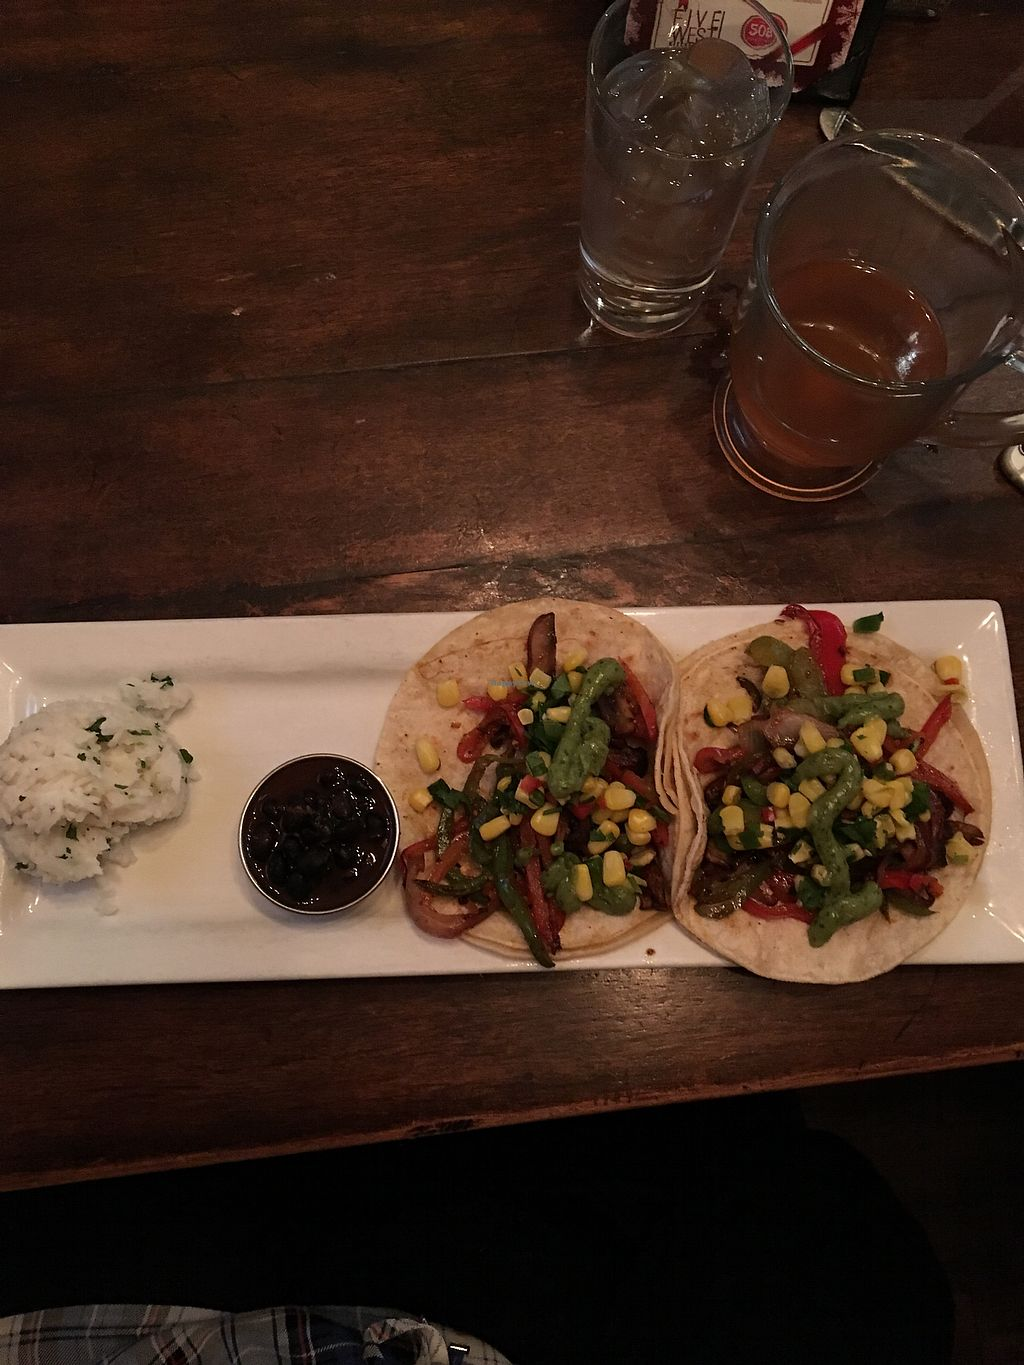 """Photo of The Loop  by <a href=""""/members/profile/TeresaLinda"""">TeresaLinda</a> <br/>Delicious and Filling Veggie Tacos with no cheese sauce <br/> December 26, 2017  - <a href='/contact/abuse/image/39767/339285'>Report</a>"""